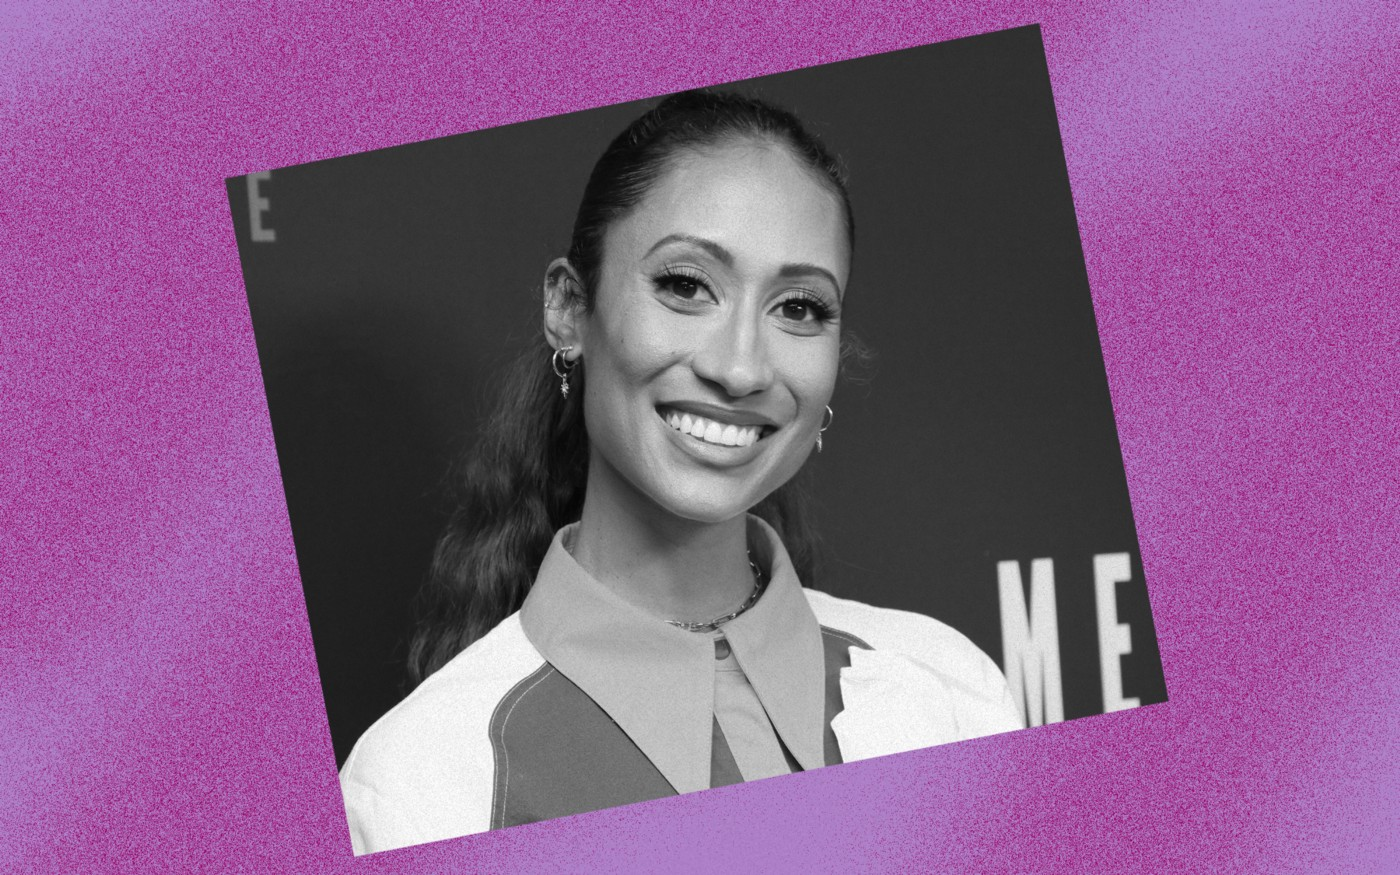 Black and white photo of Elaine Welteroth against a violet background.